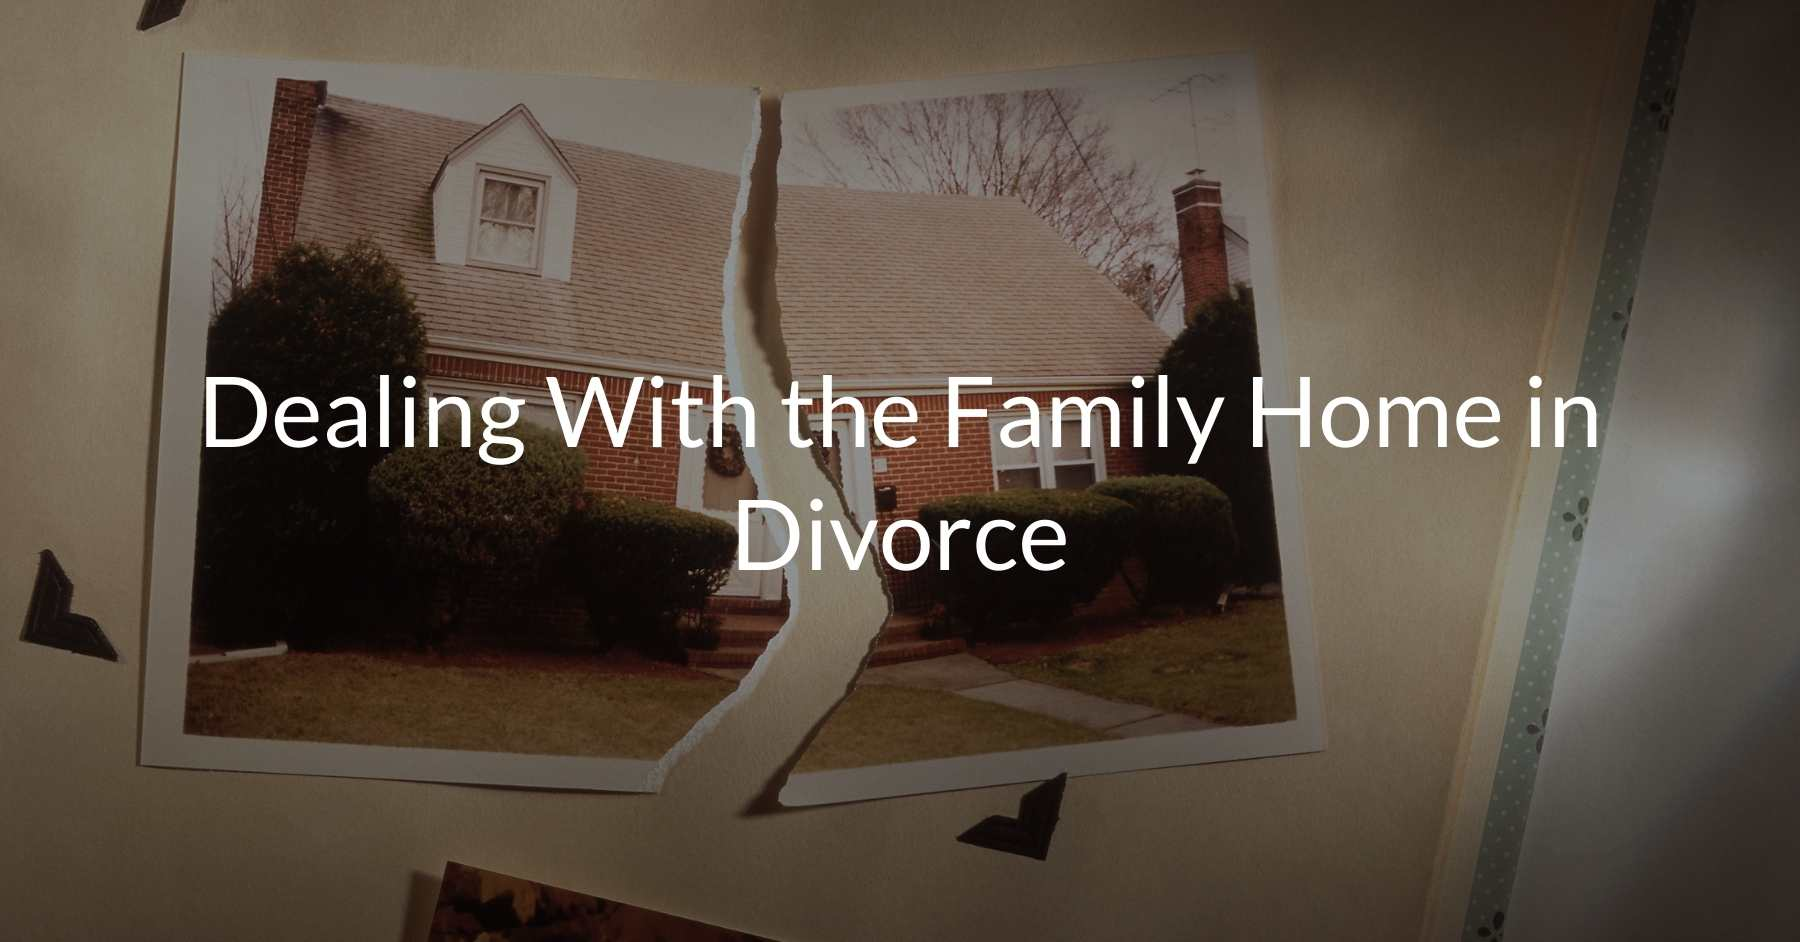 Dealing With the Family Home in Divorce